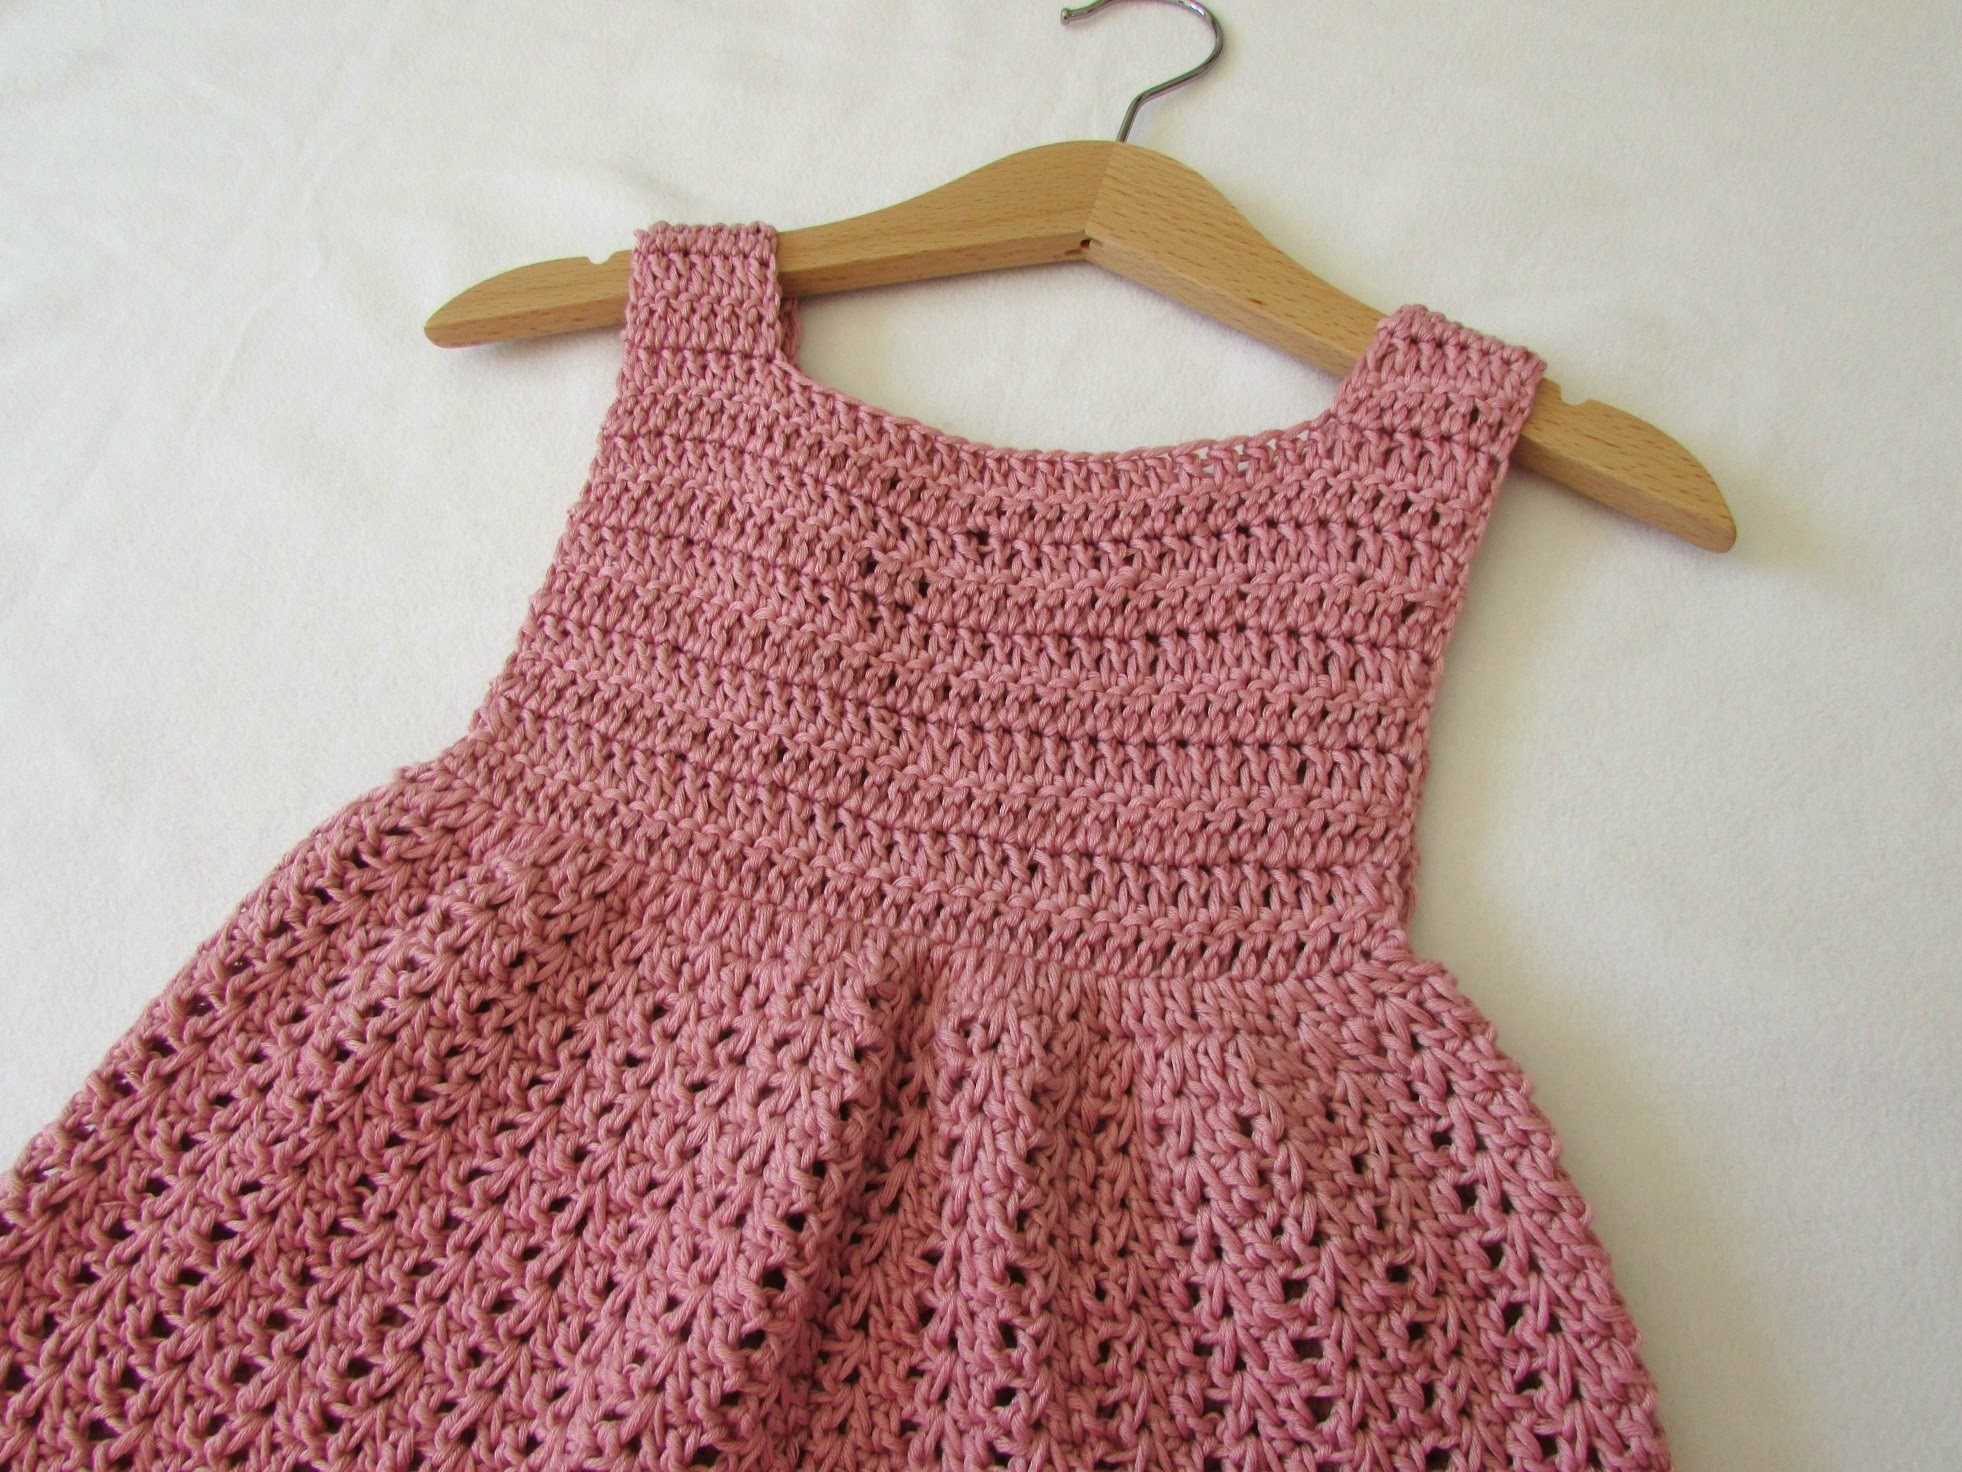 How to crochet an EASY party dress any size